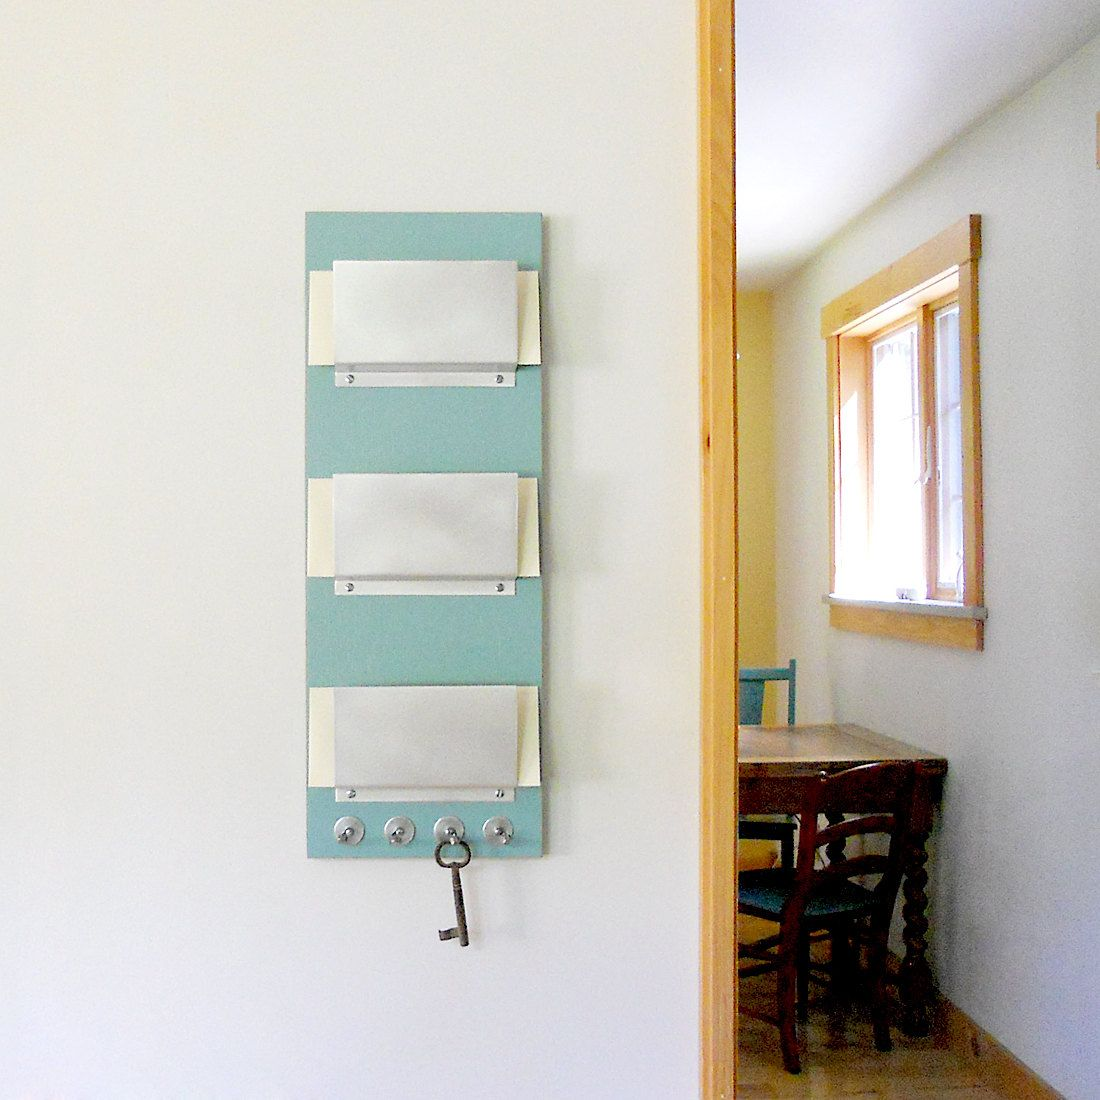 TRIPLE MAIL HOLDER: Wall Mount Family 3 Slot Mail Organizer, Minimal Modern  Home Office Entry Dorm Organization, Creative Clutter Solutions